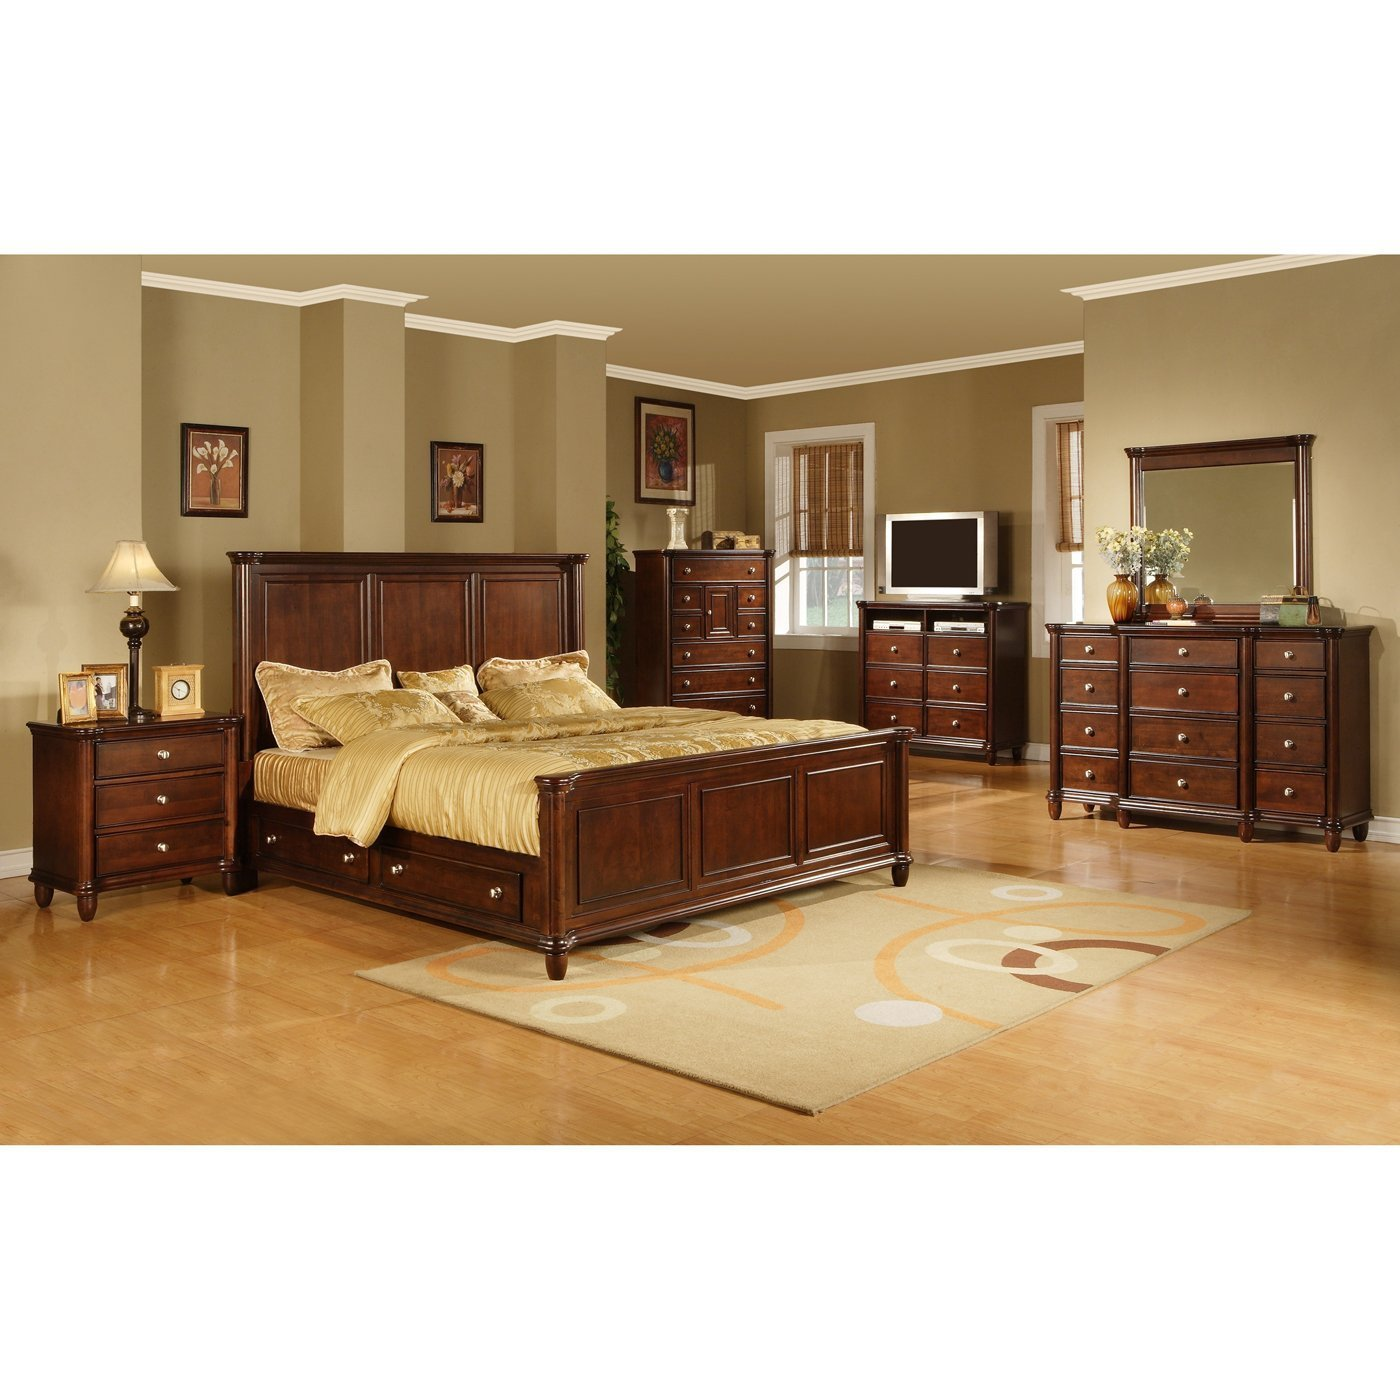 Best Elements International Hamilton Bedroom Set Atg Stores With Pictures